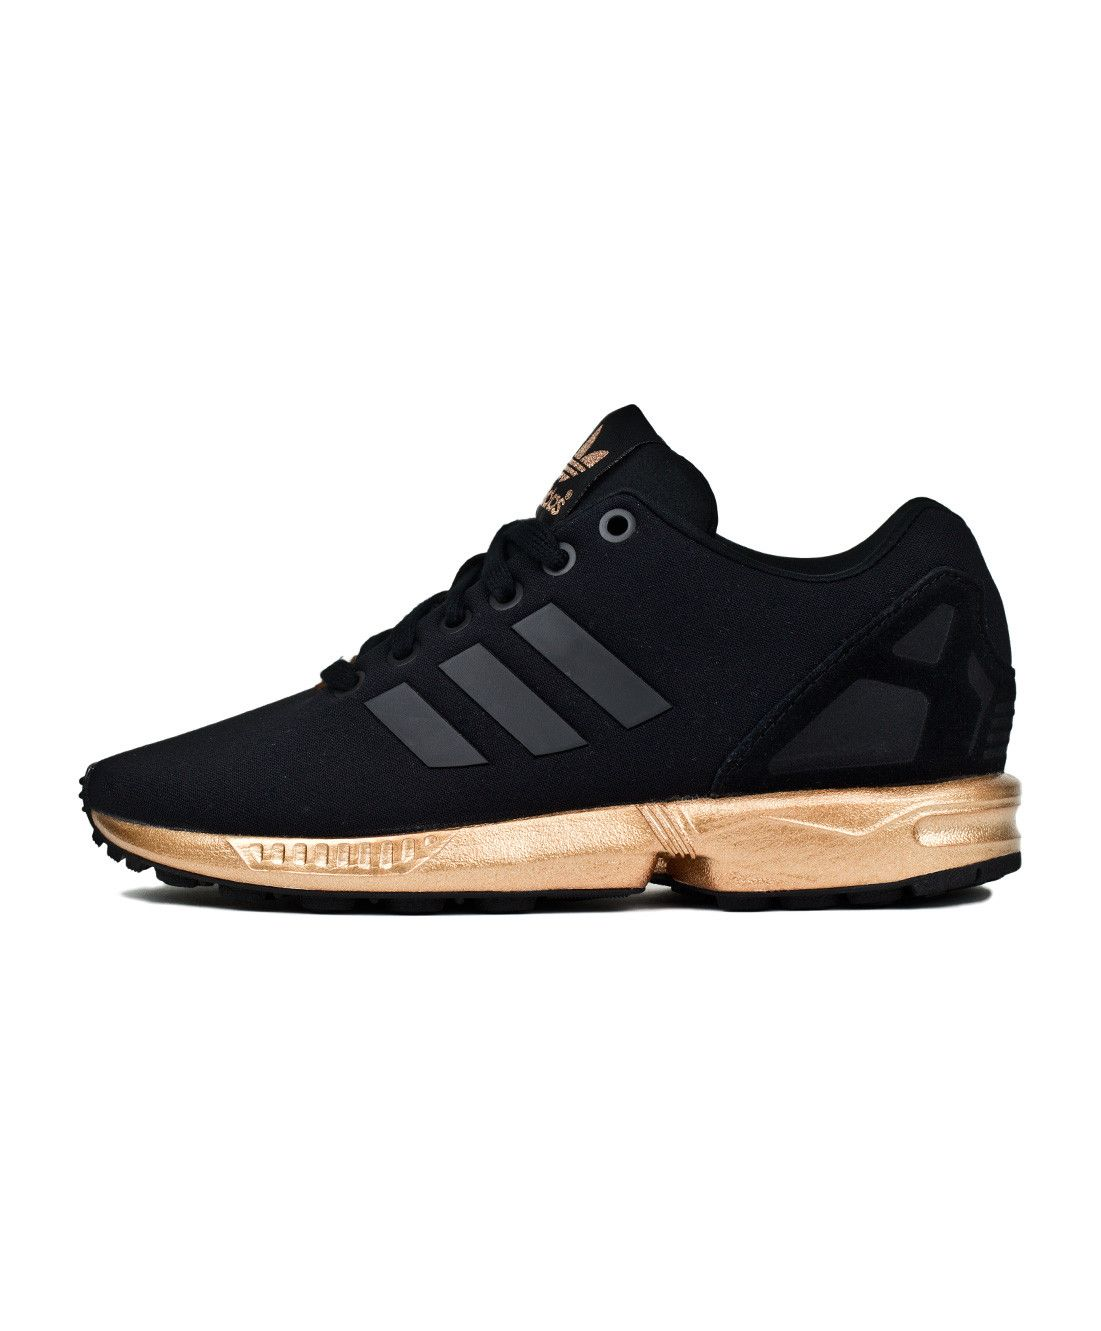 adidas zx flux gold damen